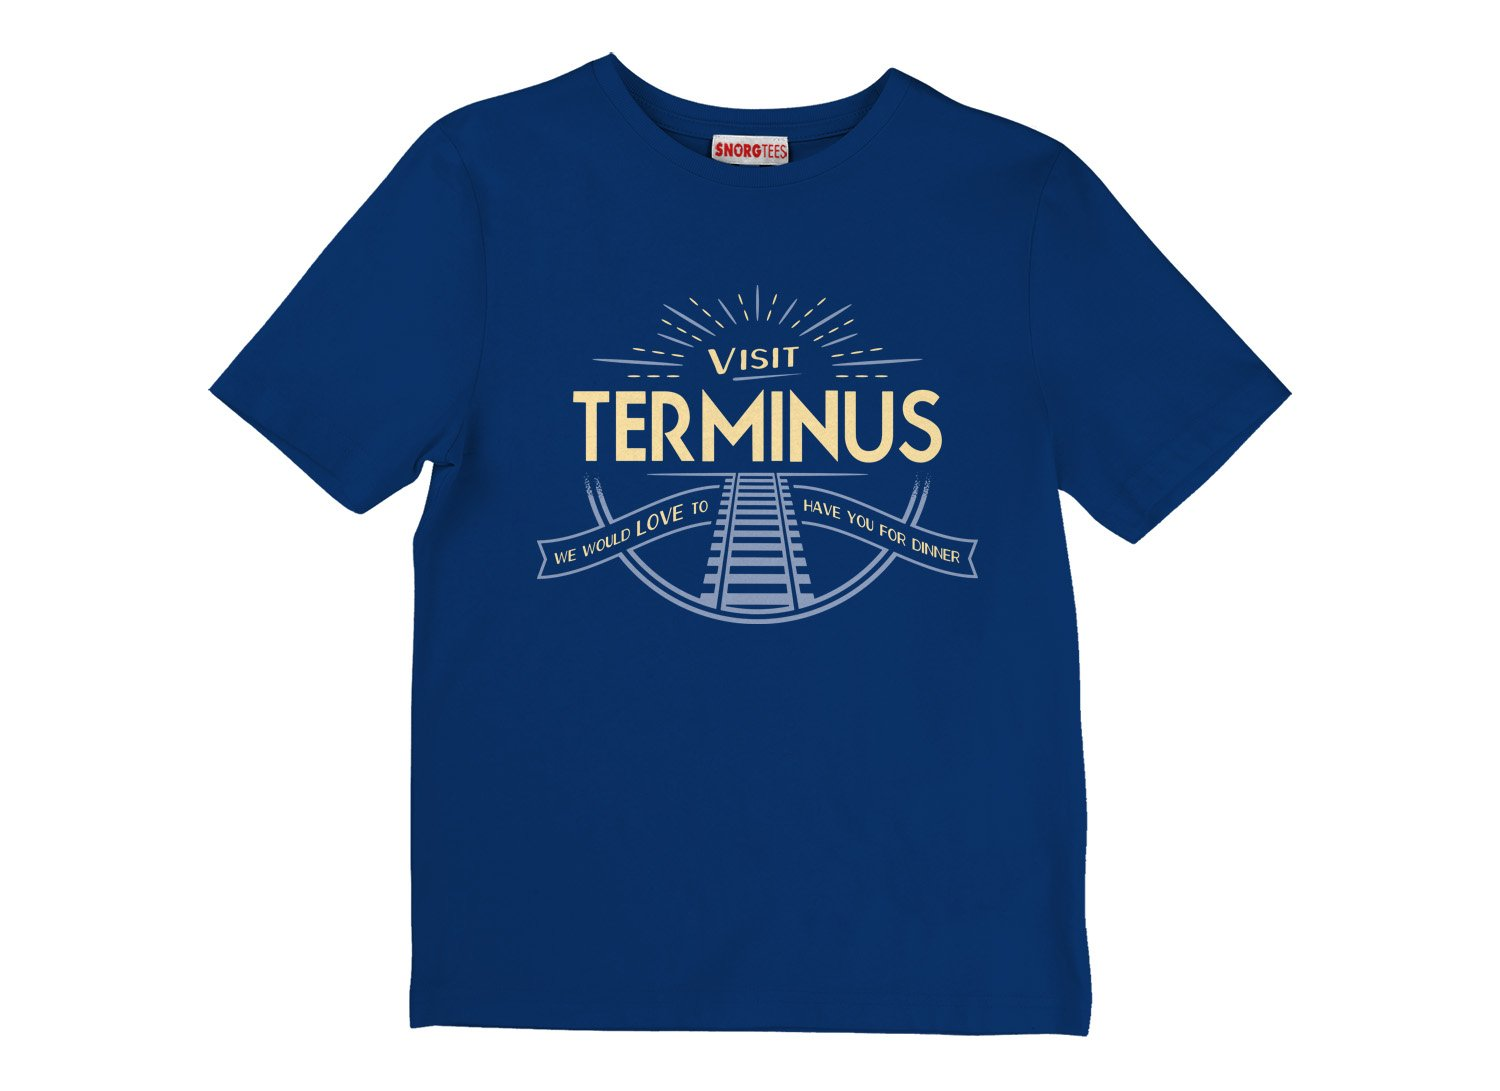 Visit Terminus on Kids T-Shirt